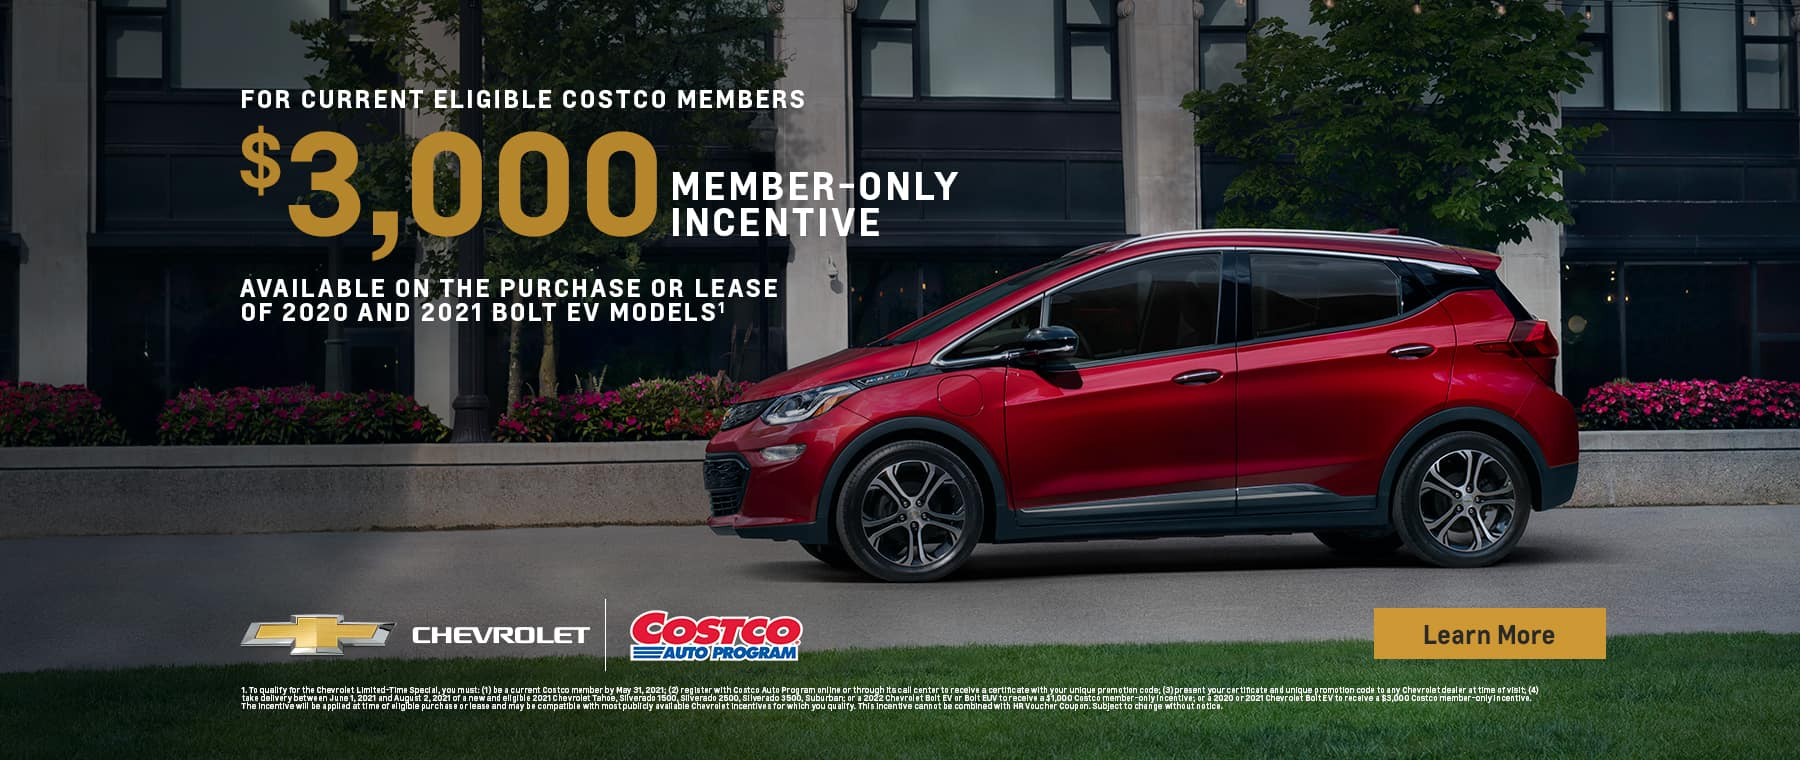 $3,000 costco members only incentive